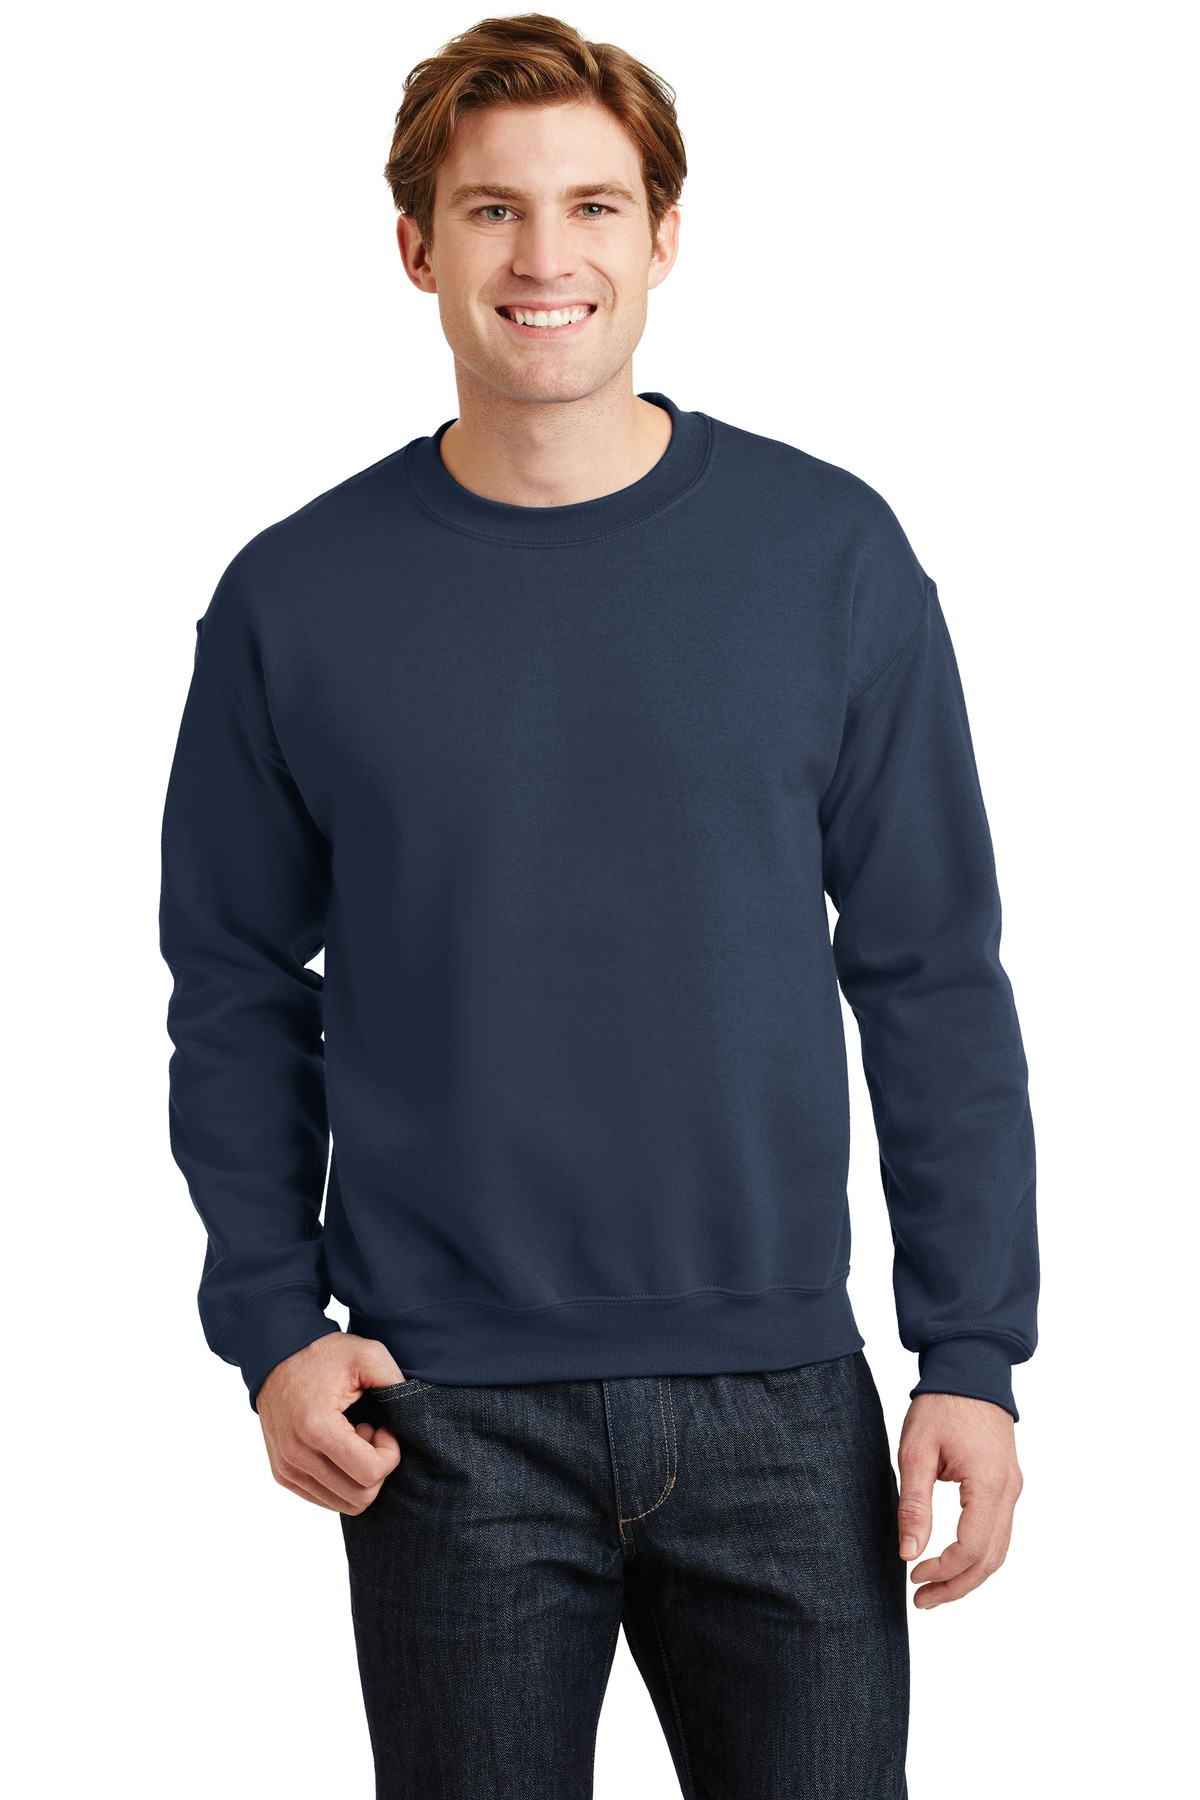 Gildan ®  - Heavy Blend™ Crewneck Sweatshirt.  18000 - Navy